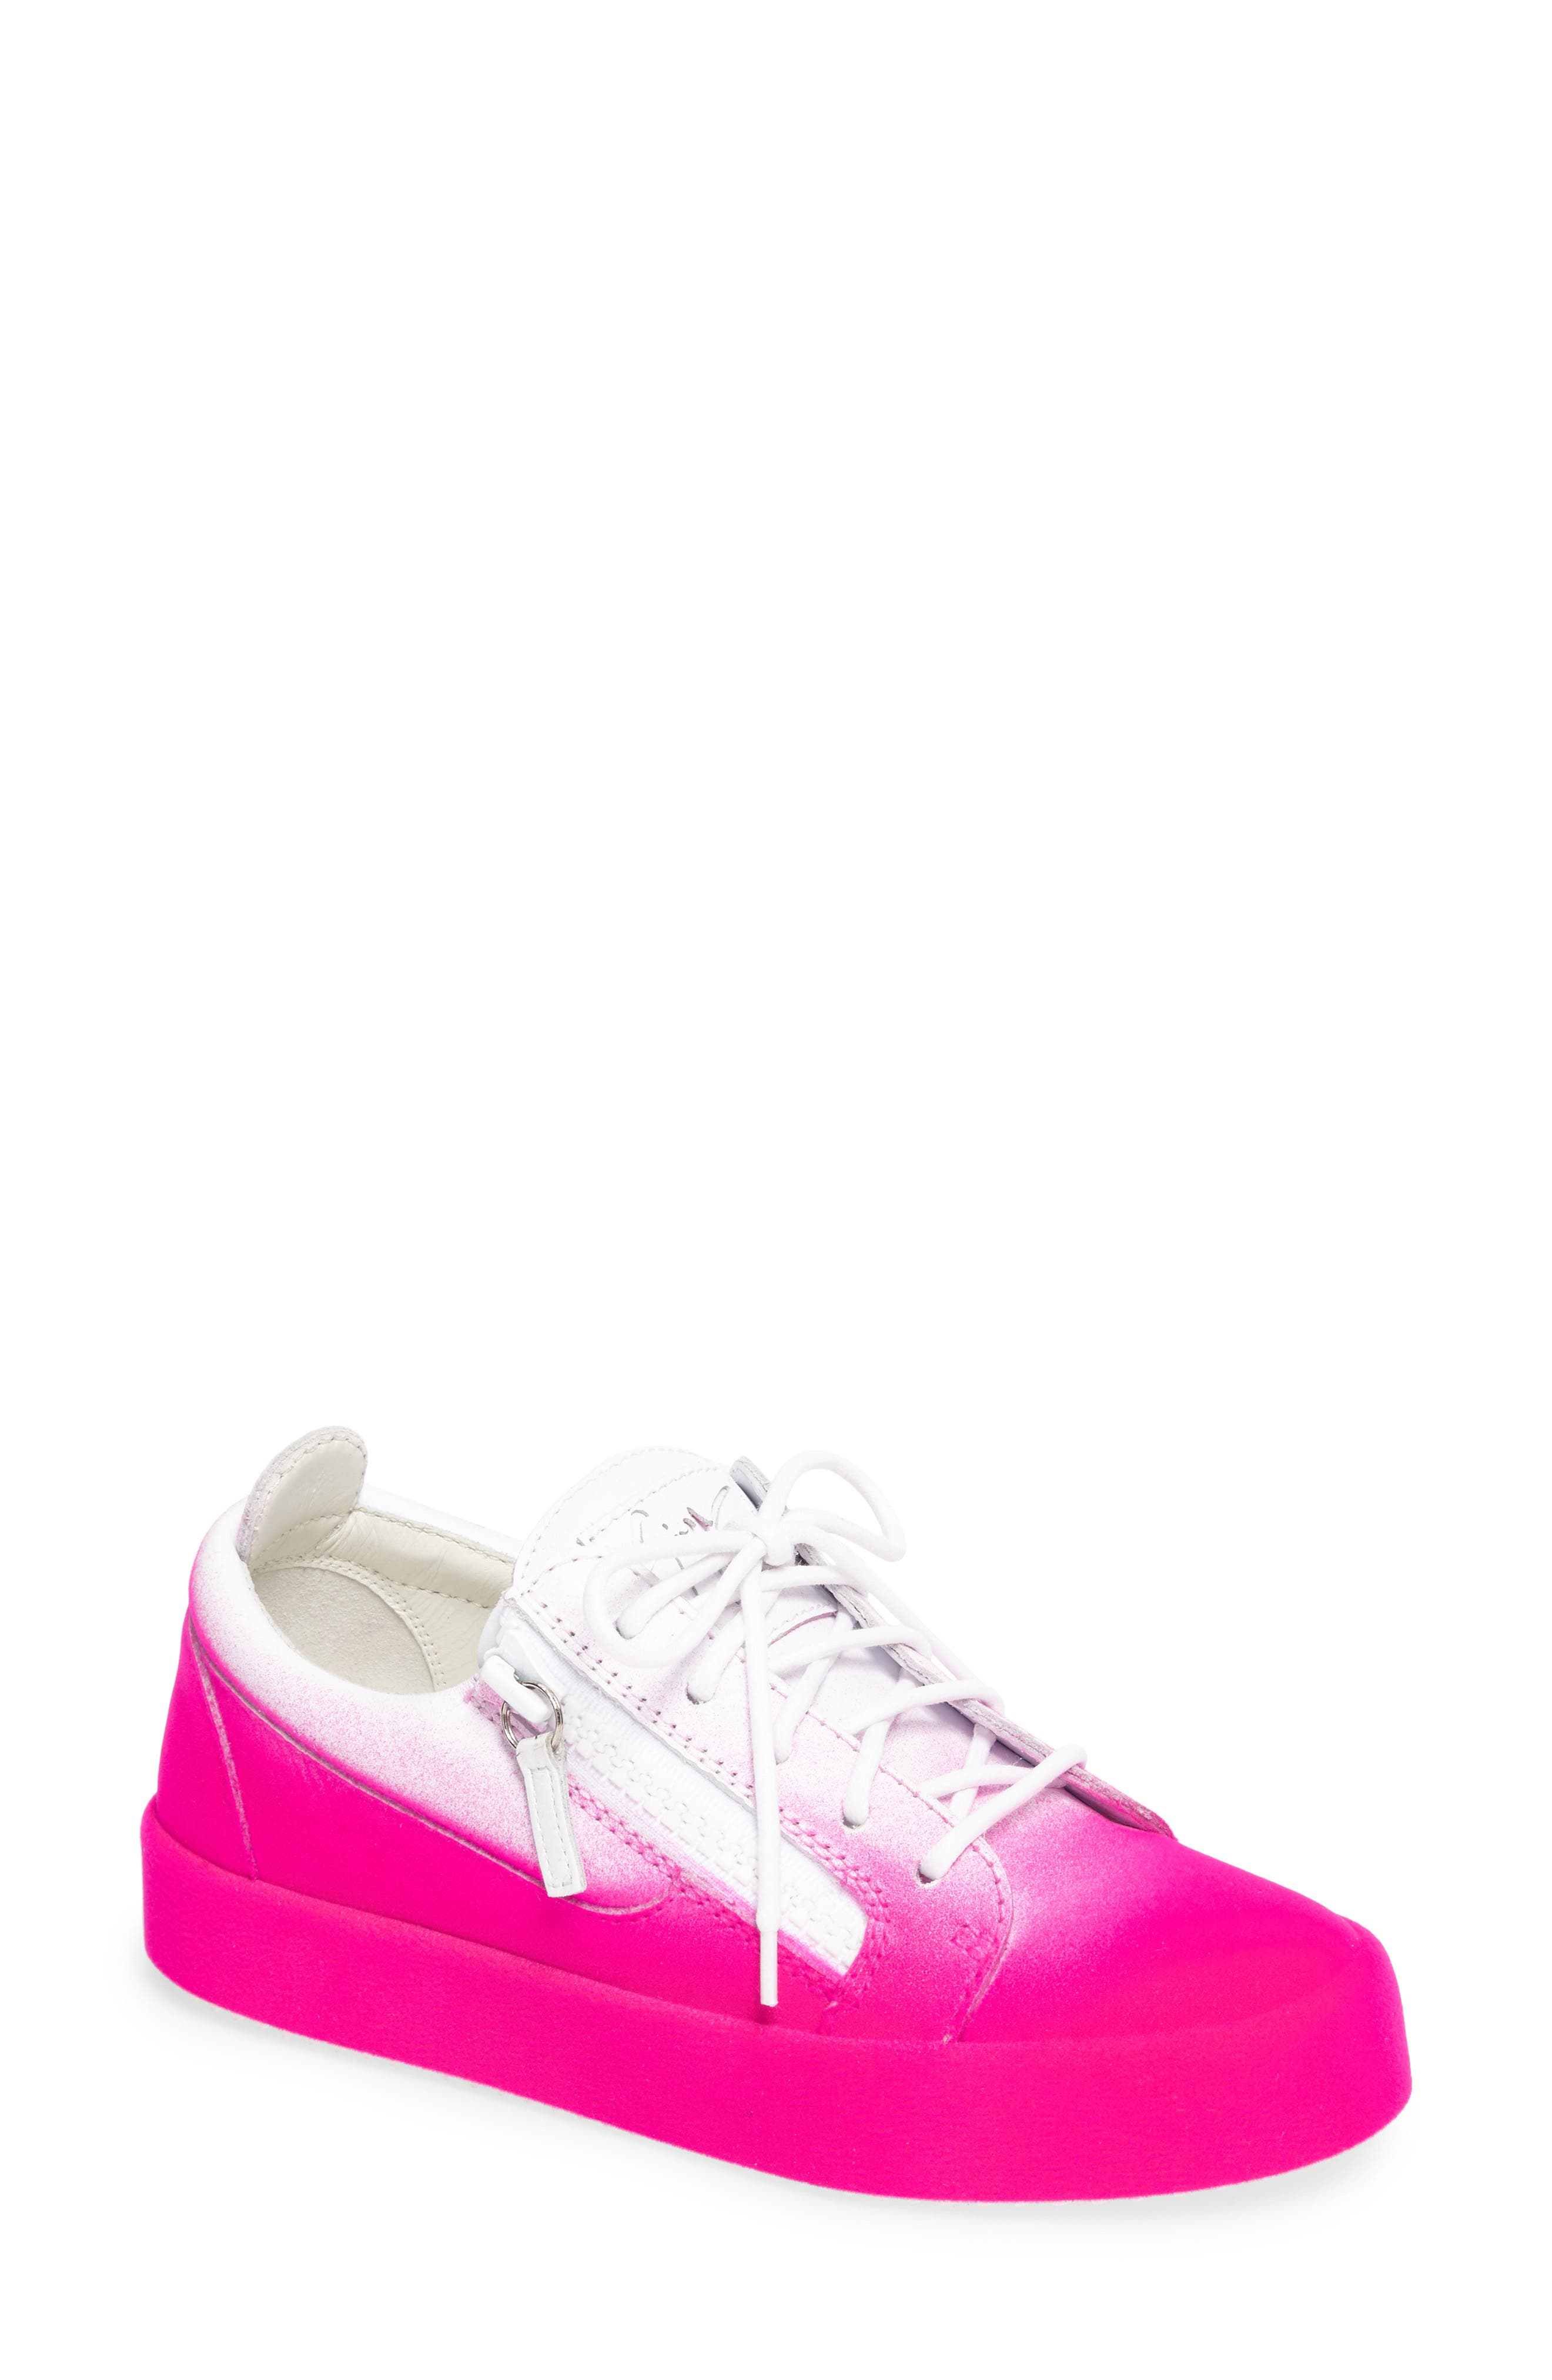 May London Low Top Sneaker,                         Main,                         color, White/ Pink